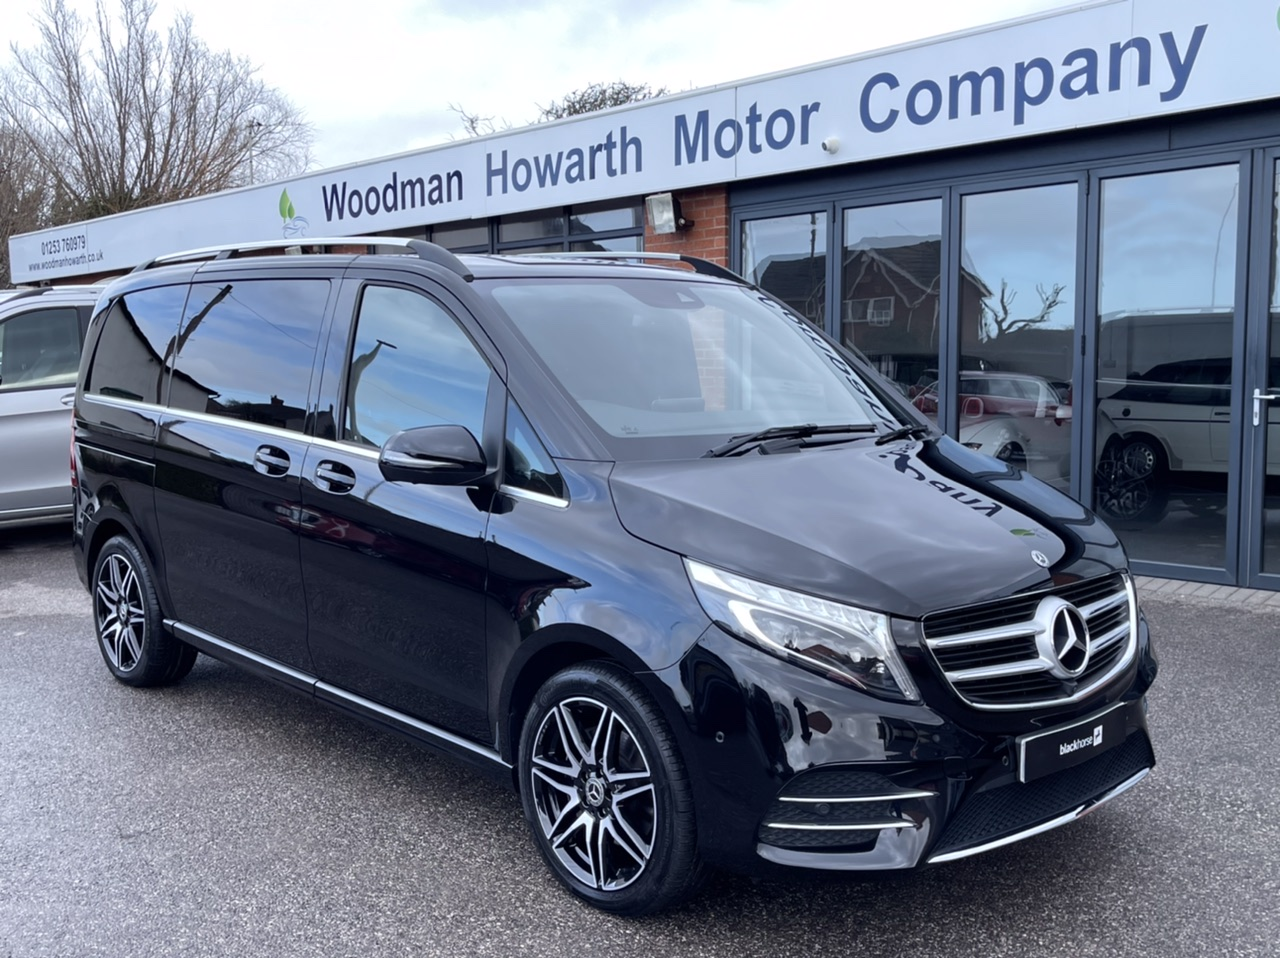 2018 MERCEDES BENZ V250 D 190BHP AMG LINE AUTO SWB 7 SEAT PACKAGE VAT Q- Rare SWB AMG With 7 Seat/Table Package-Only 4000 miles-360 Cameras++